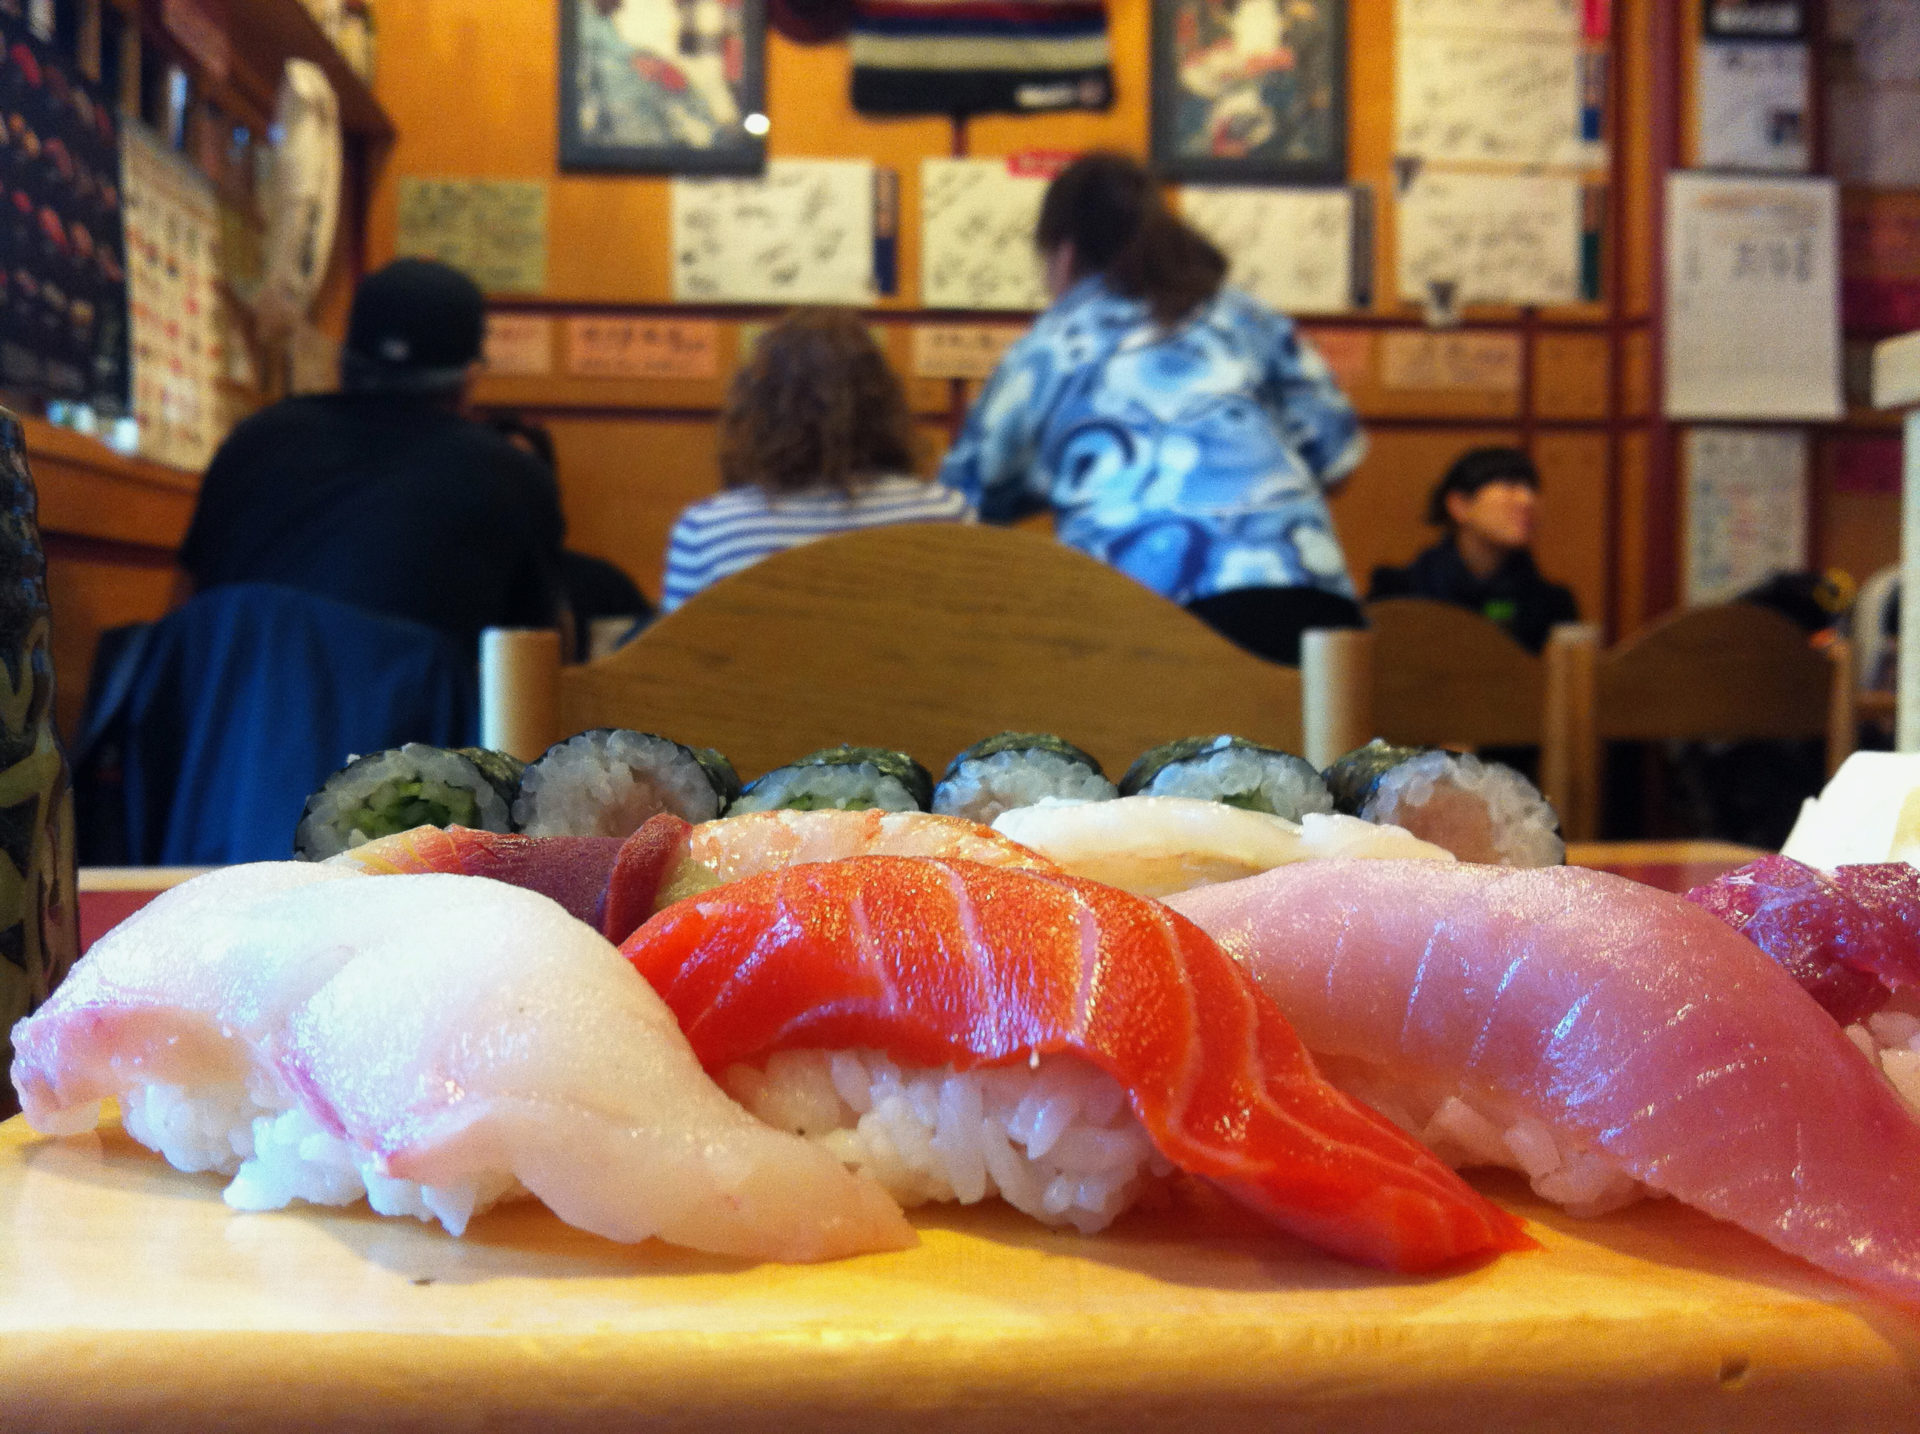 Sushi am Zielort des Rocky Mountaineer in Vancouver